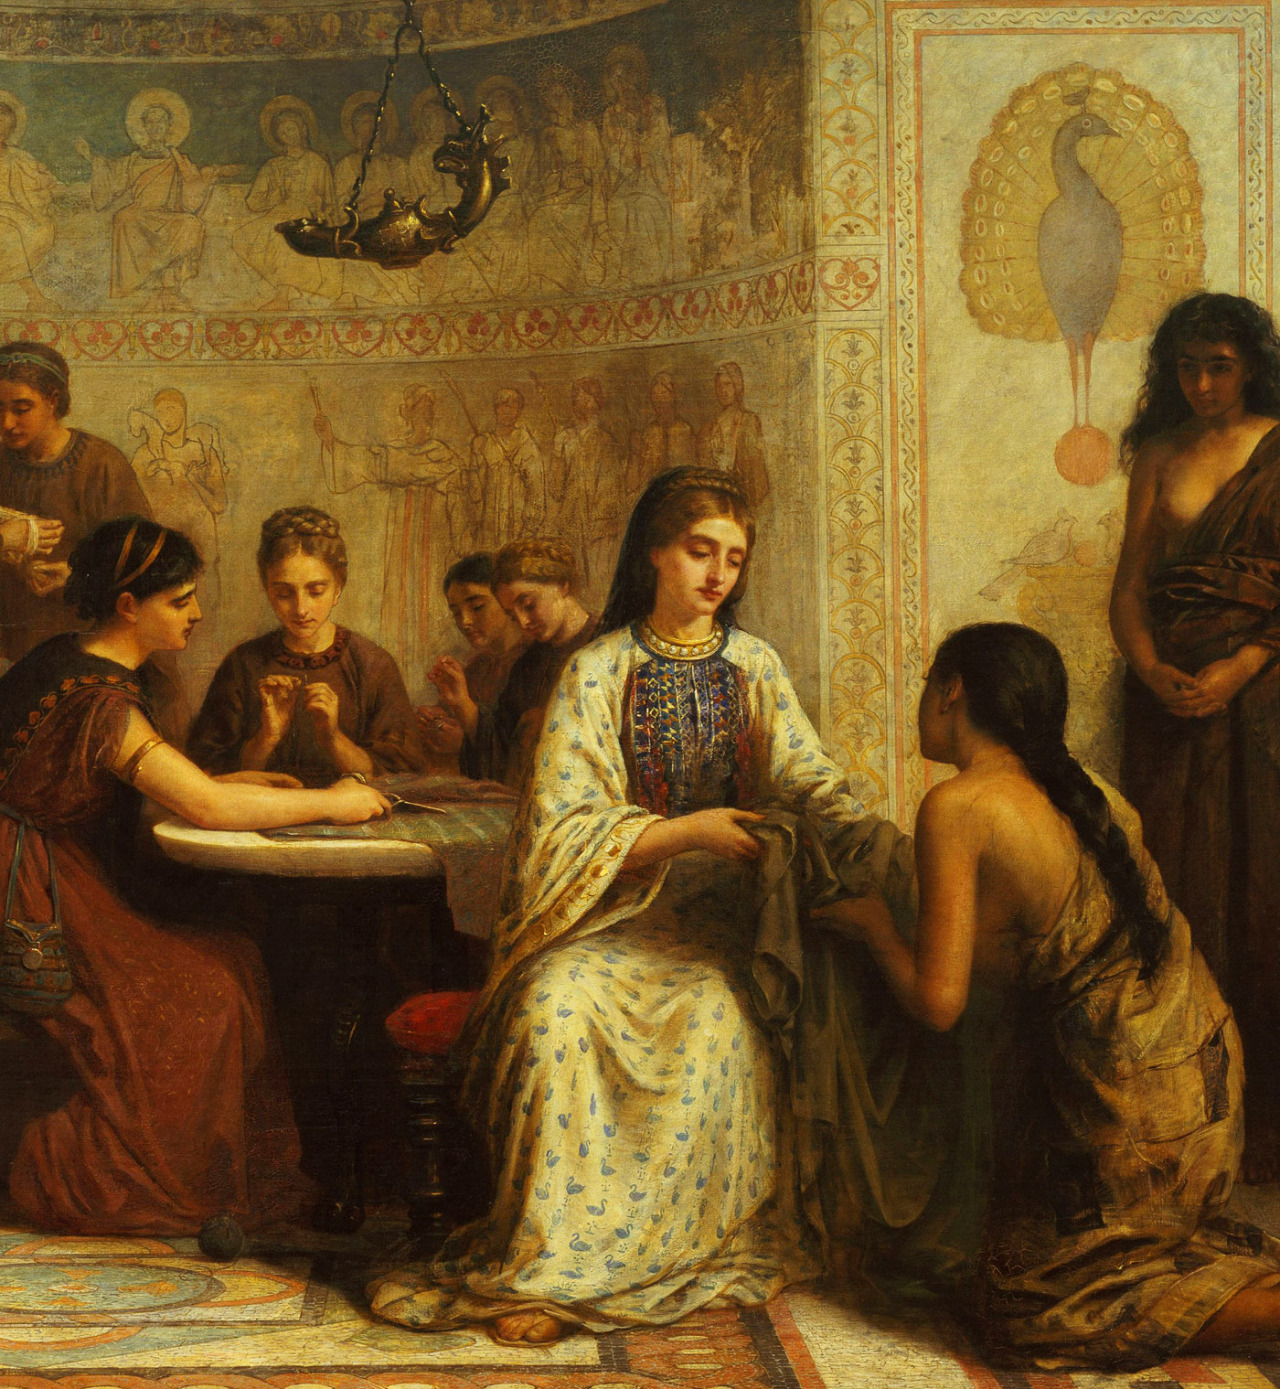 jaded-mandarin:  A Dorcas meeting in the 6th Century - Edwin Long. Detail.   Dorcas is a local group of people, usually based in a church, with a mission of providing clothing to the poor.